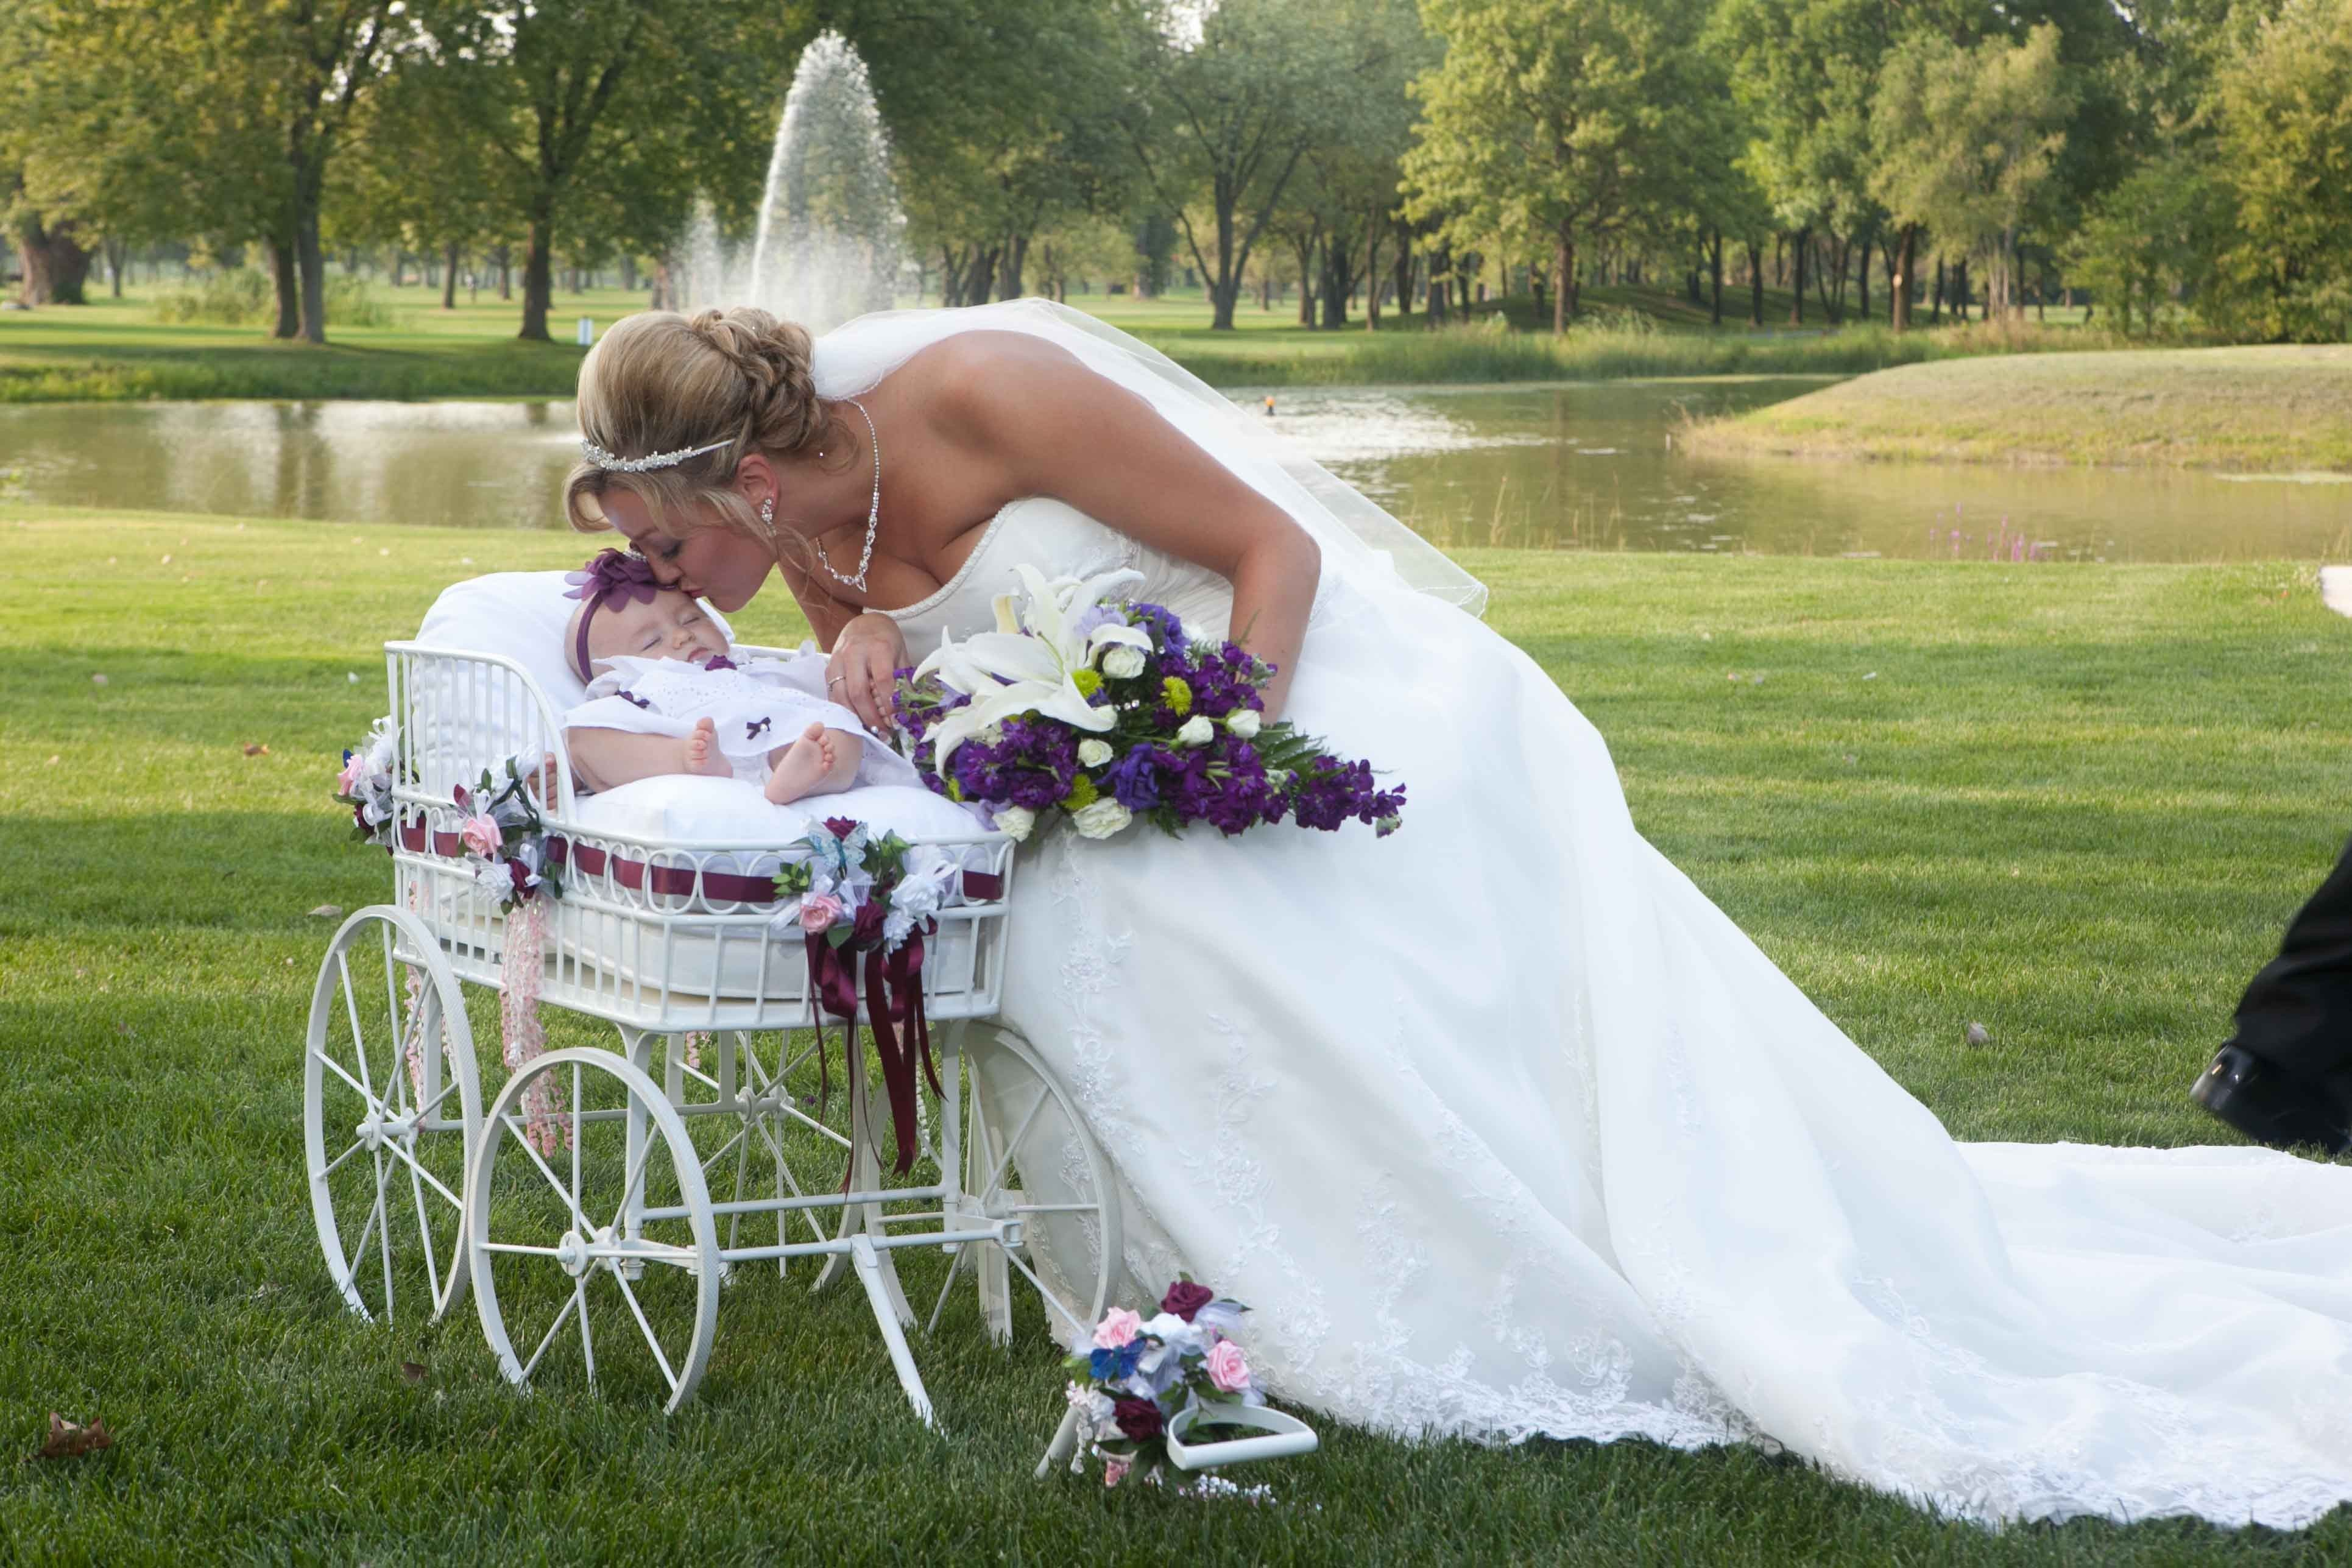 flower girl wagon | Wedding Wagon Large Ceremony and Procession ...